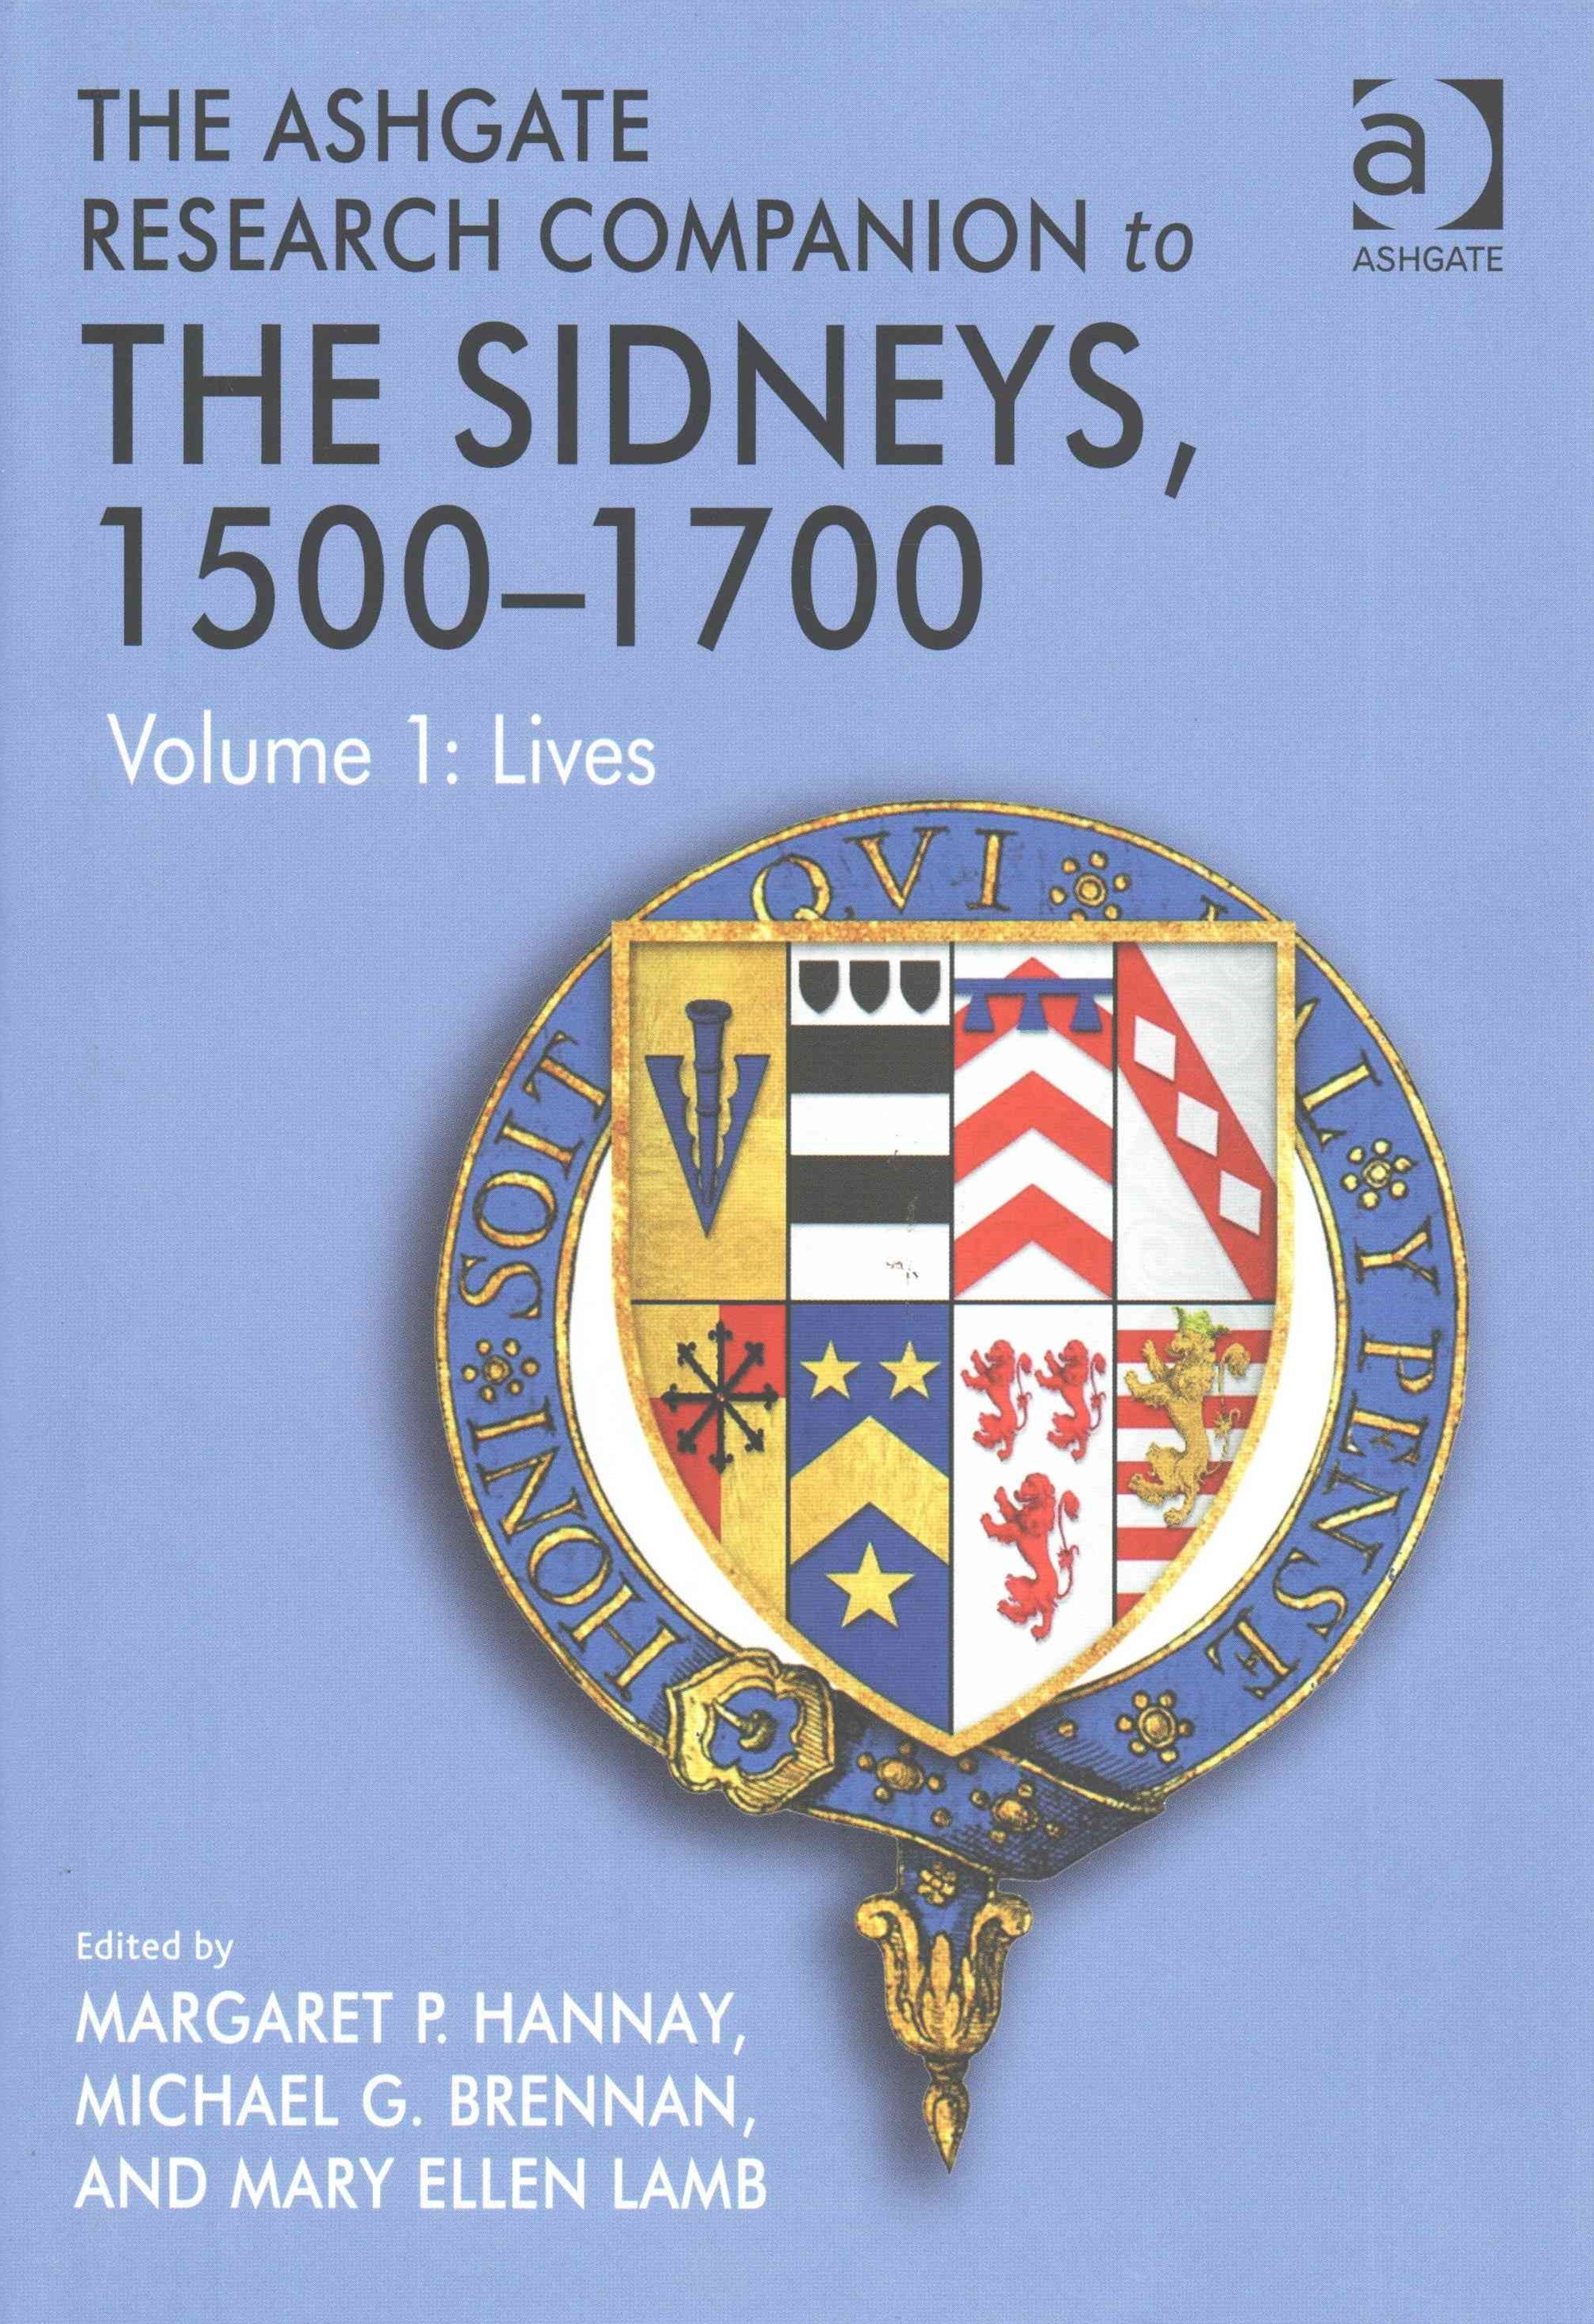 The Ashgate Research Companion to the Sidneys, 1500-1700 - Lives